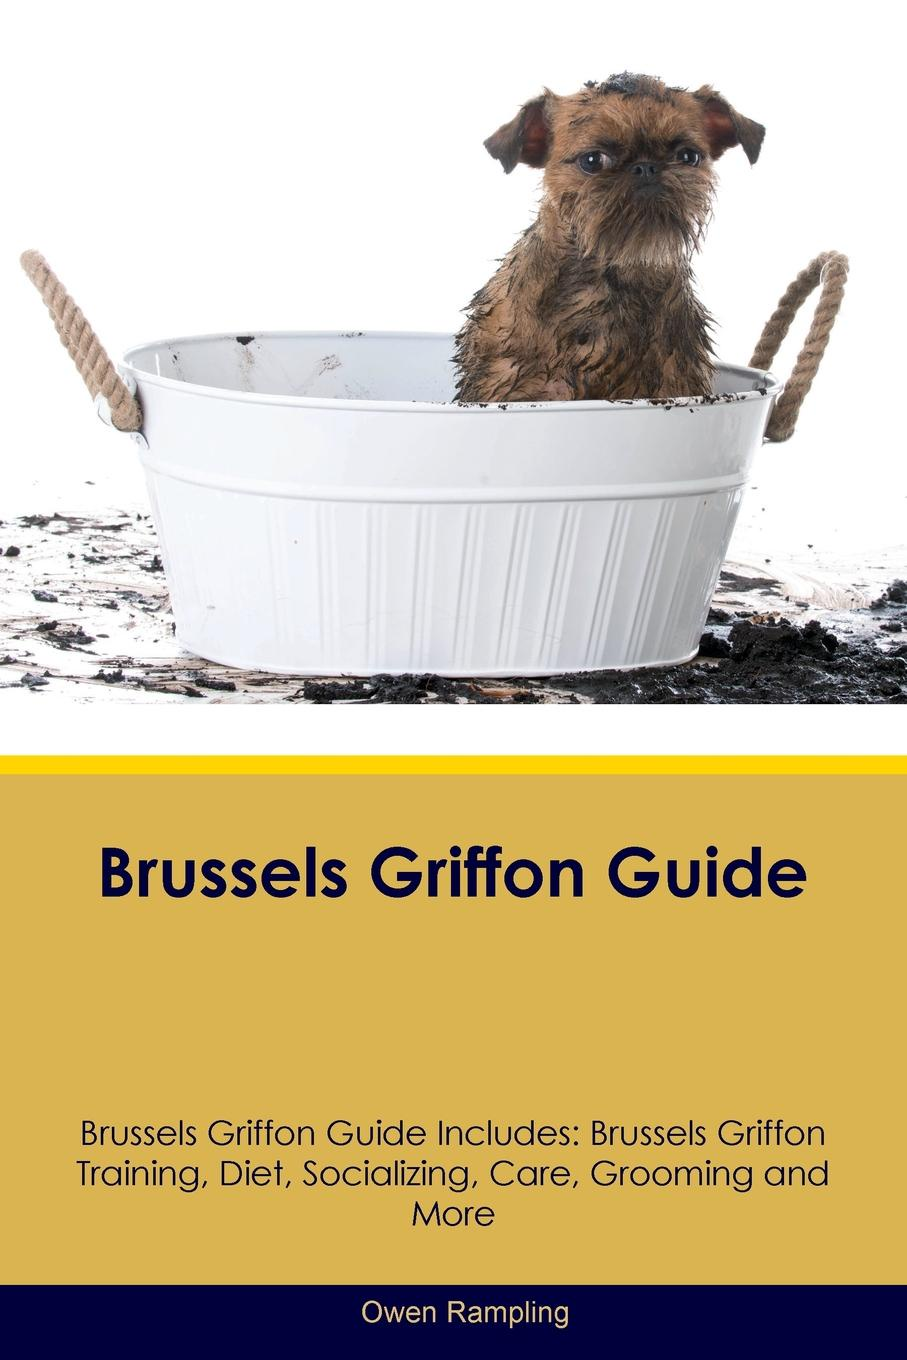 Owen Rampling Brussels Griffon Guide Brussels Griffon Guide Includes. Brussels Griffon Training, Diet, Socializing, Care, Grooming, Breeding and More brussels type